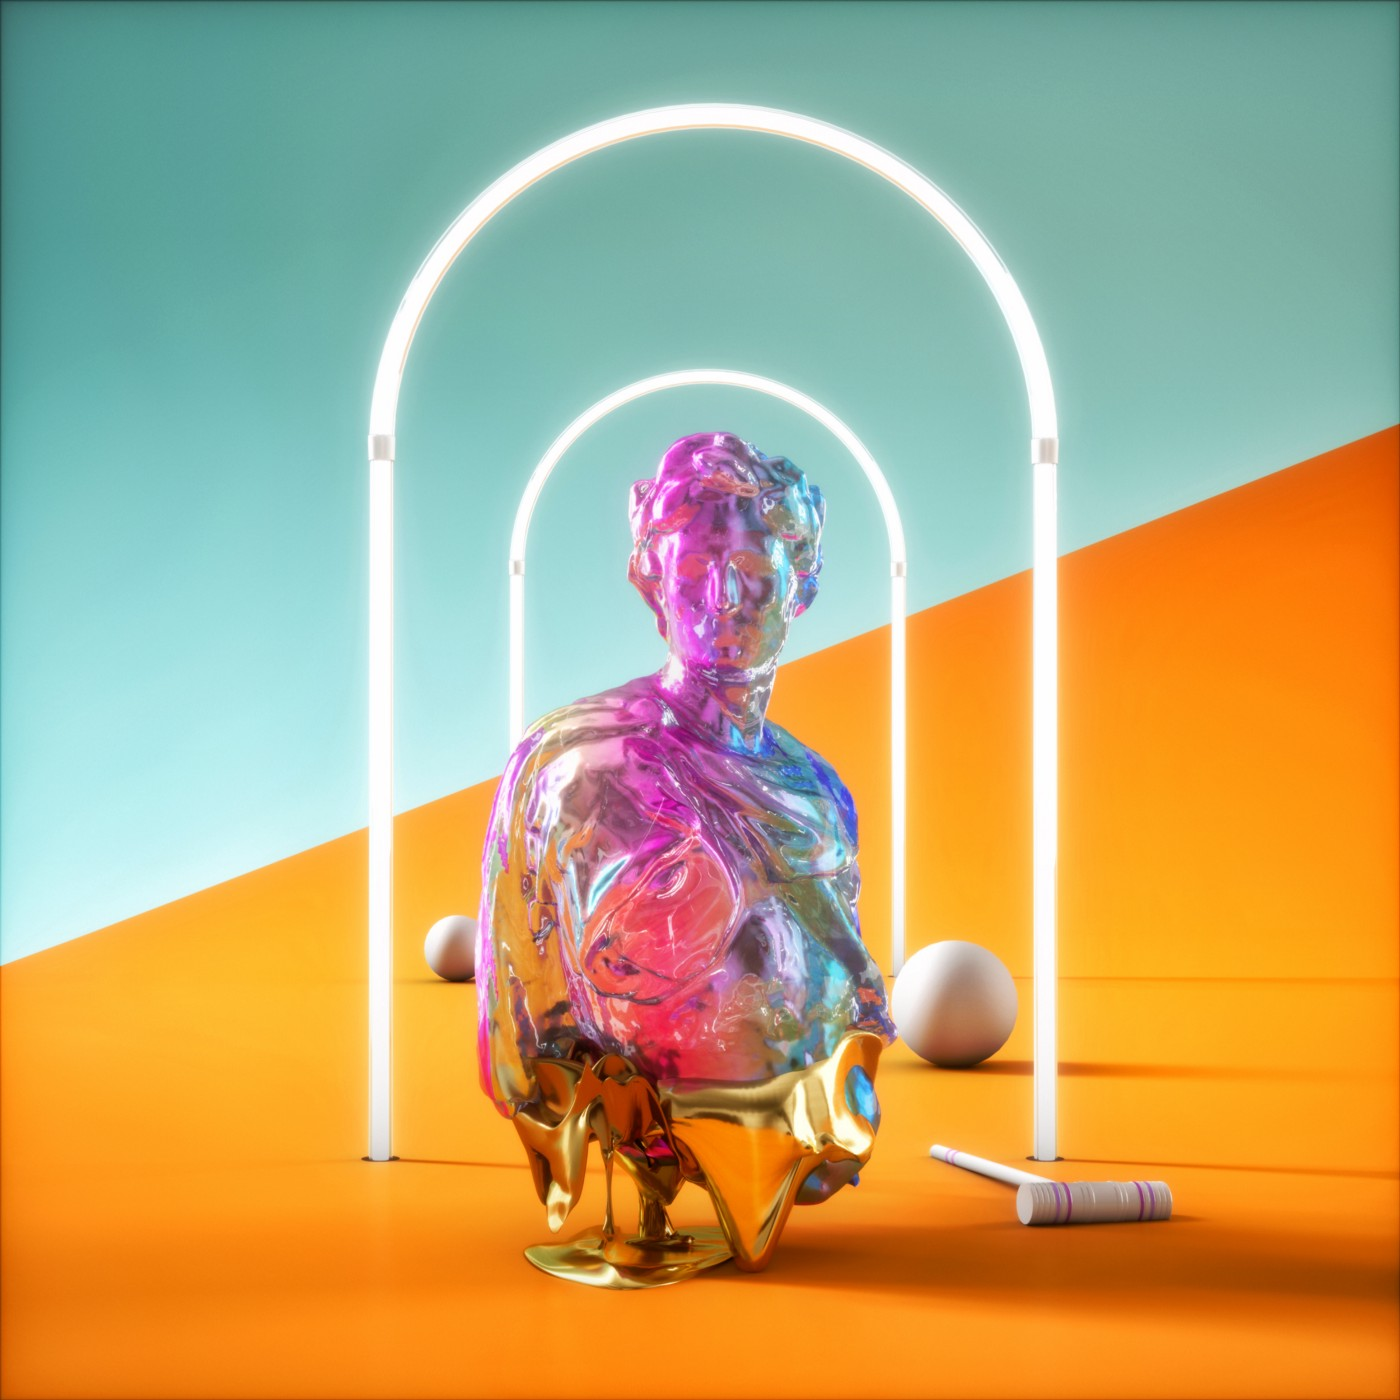 A computer futuristic-y colorful rendering of a crystallized statue, croquet hoops, a couple croquet balls, and a mallet.